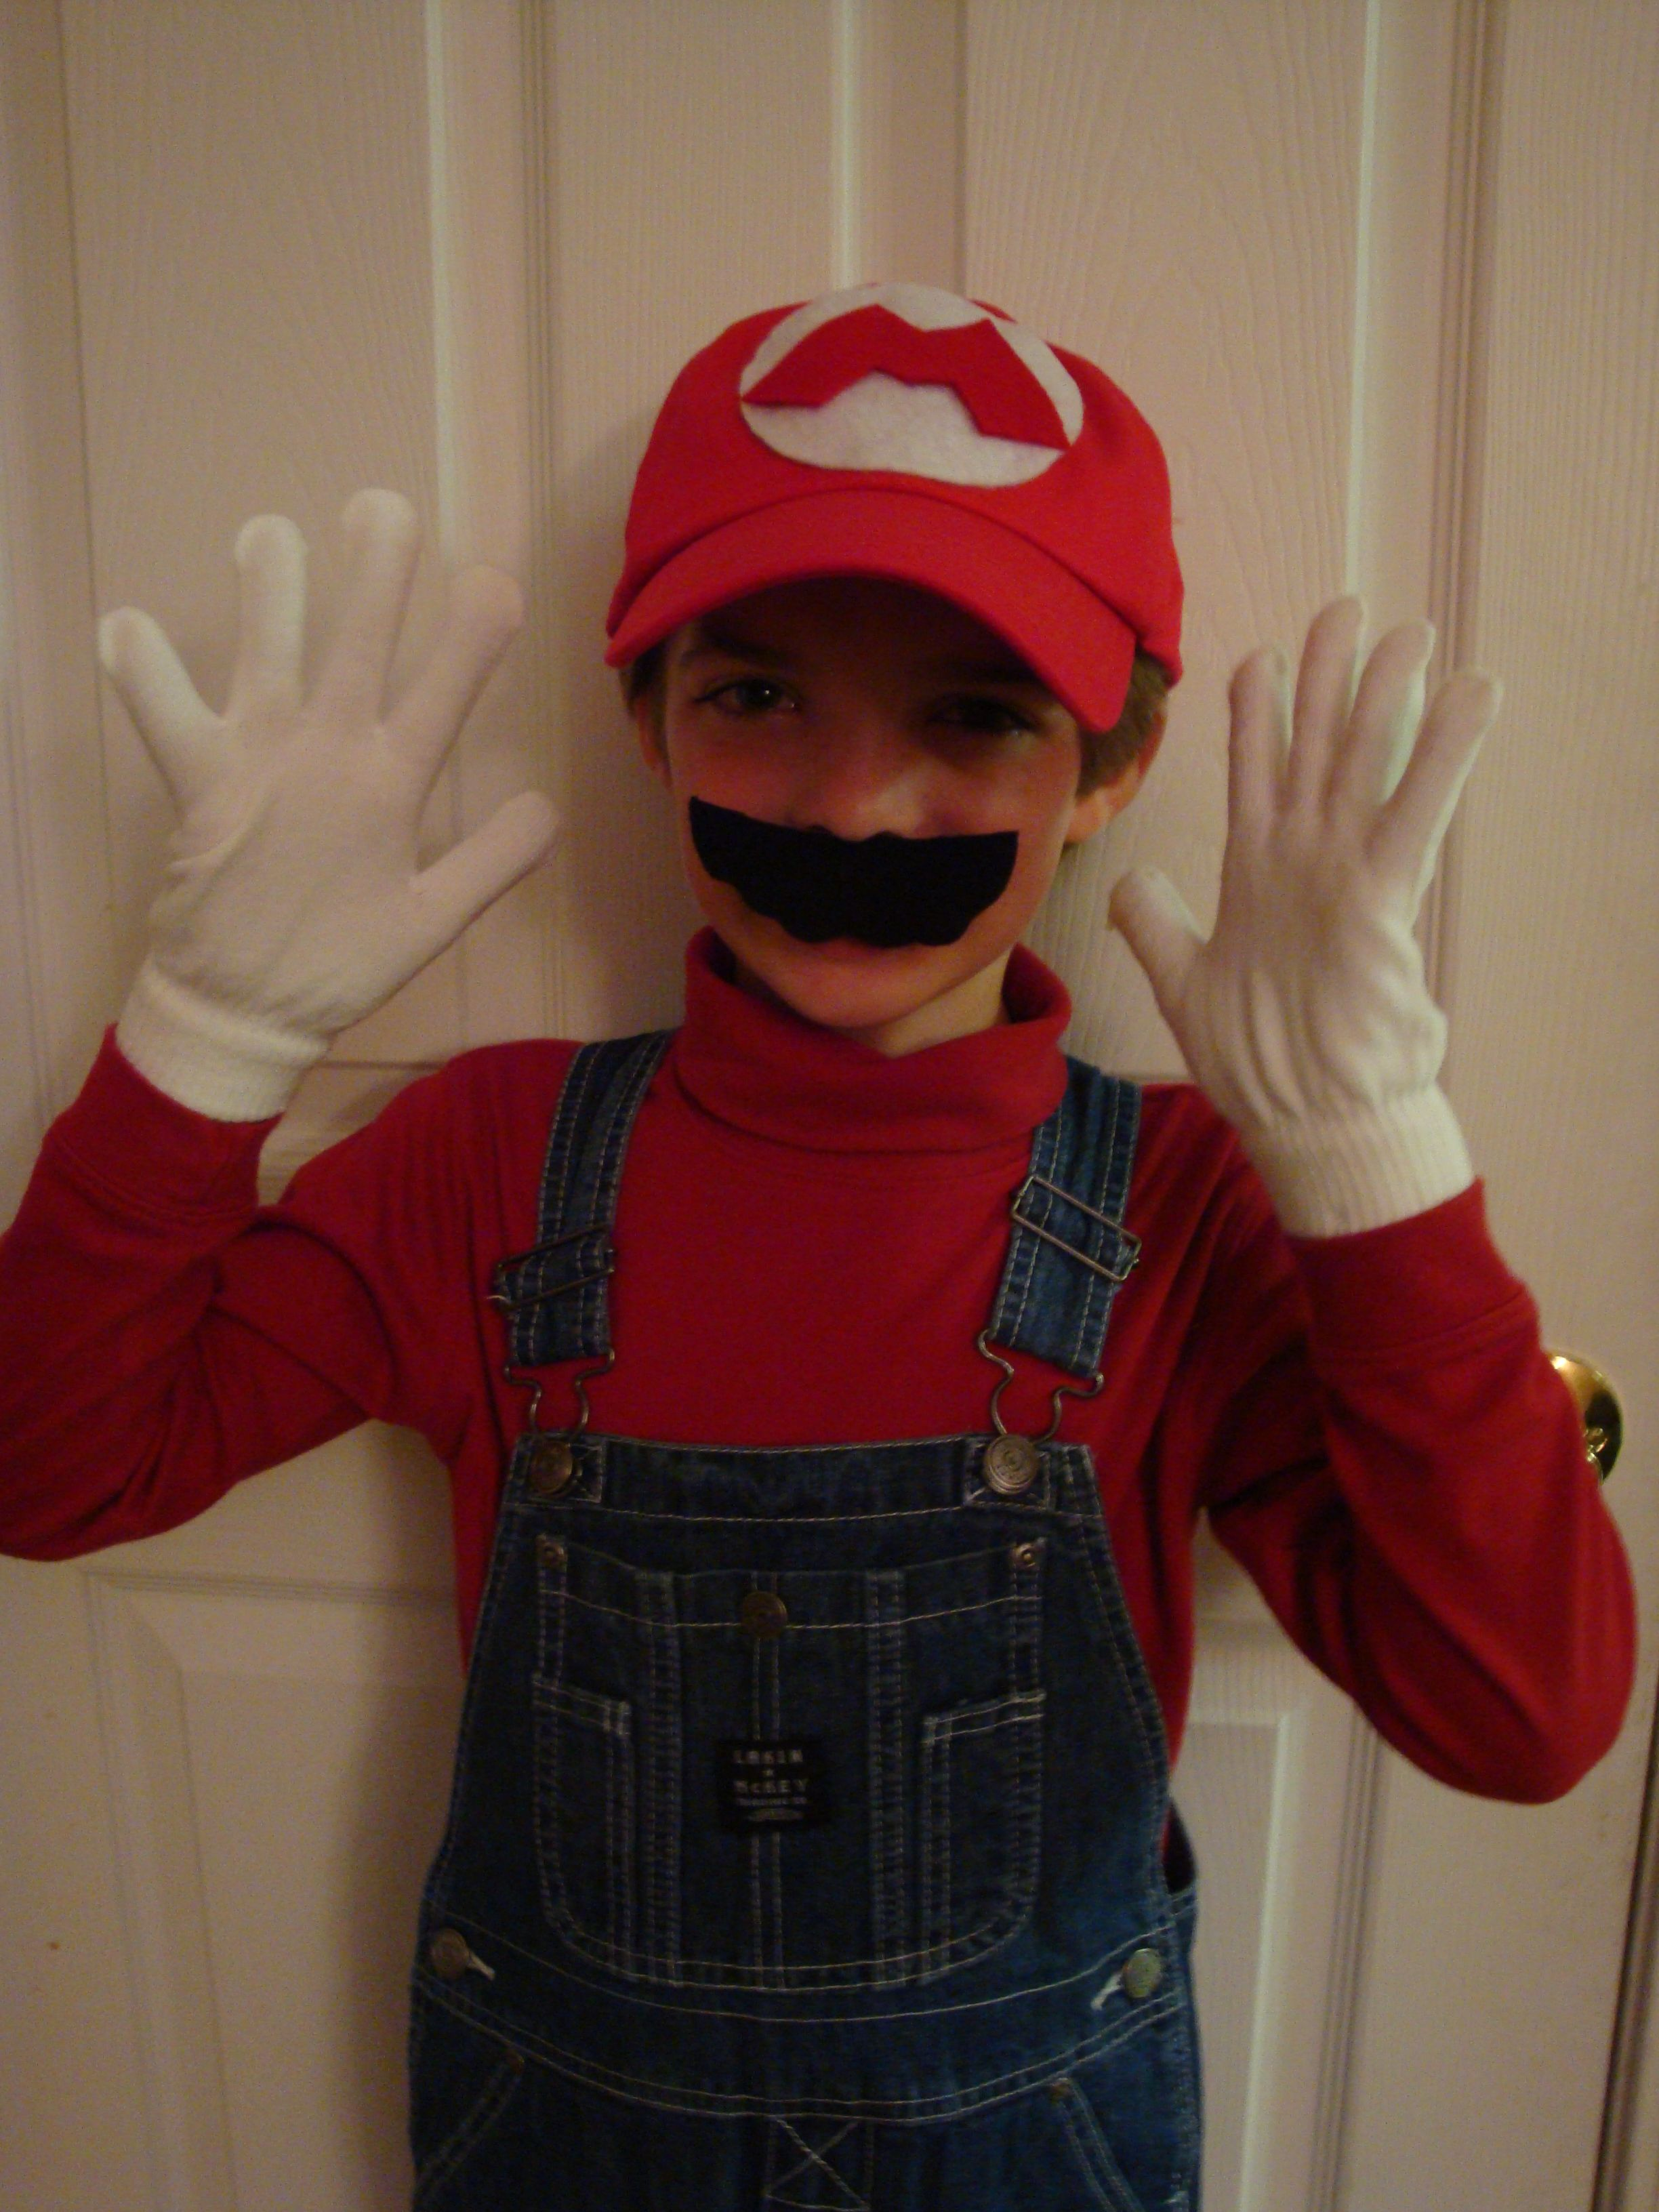 Cher is back on the charts with womans world mario costume homemade halloween costume idea mario costumes ideas mario halloween homemade costumes solutioingenieria Choice Image